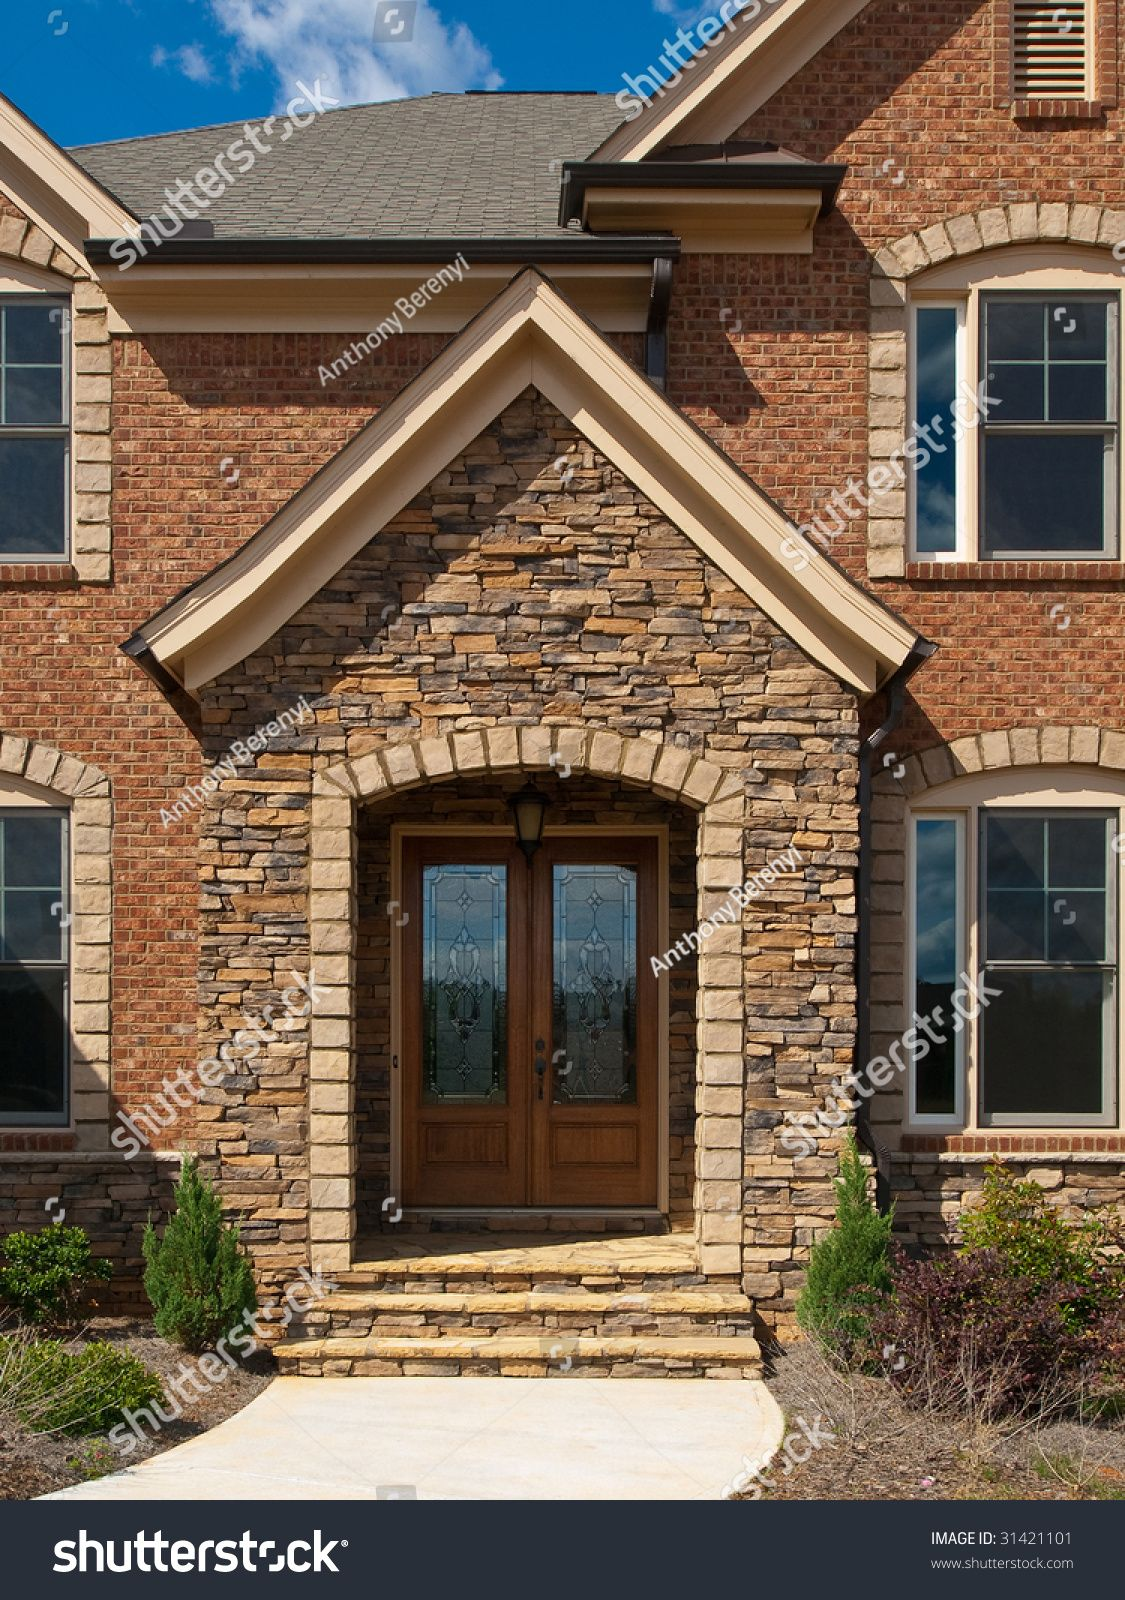 Luxury Model Home Exterior stone arch front entrance view   stacked on limestone home exterior, paint home exterior, granite home exterior, painted stone home exterior, 2 story house exterior, faux stone home exterior, ledger stone home exterior, rock home exterior, stucco home exterior, cultured stone home exterior, natural stone home exterior, wood home exterior, stainless steel home exterior, acadian home exterior, brick home exterior, wainscoting home exterior, rock for house exterior, stacked stone home bar, concrete home exterior, shutters home exterior,